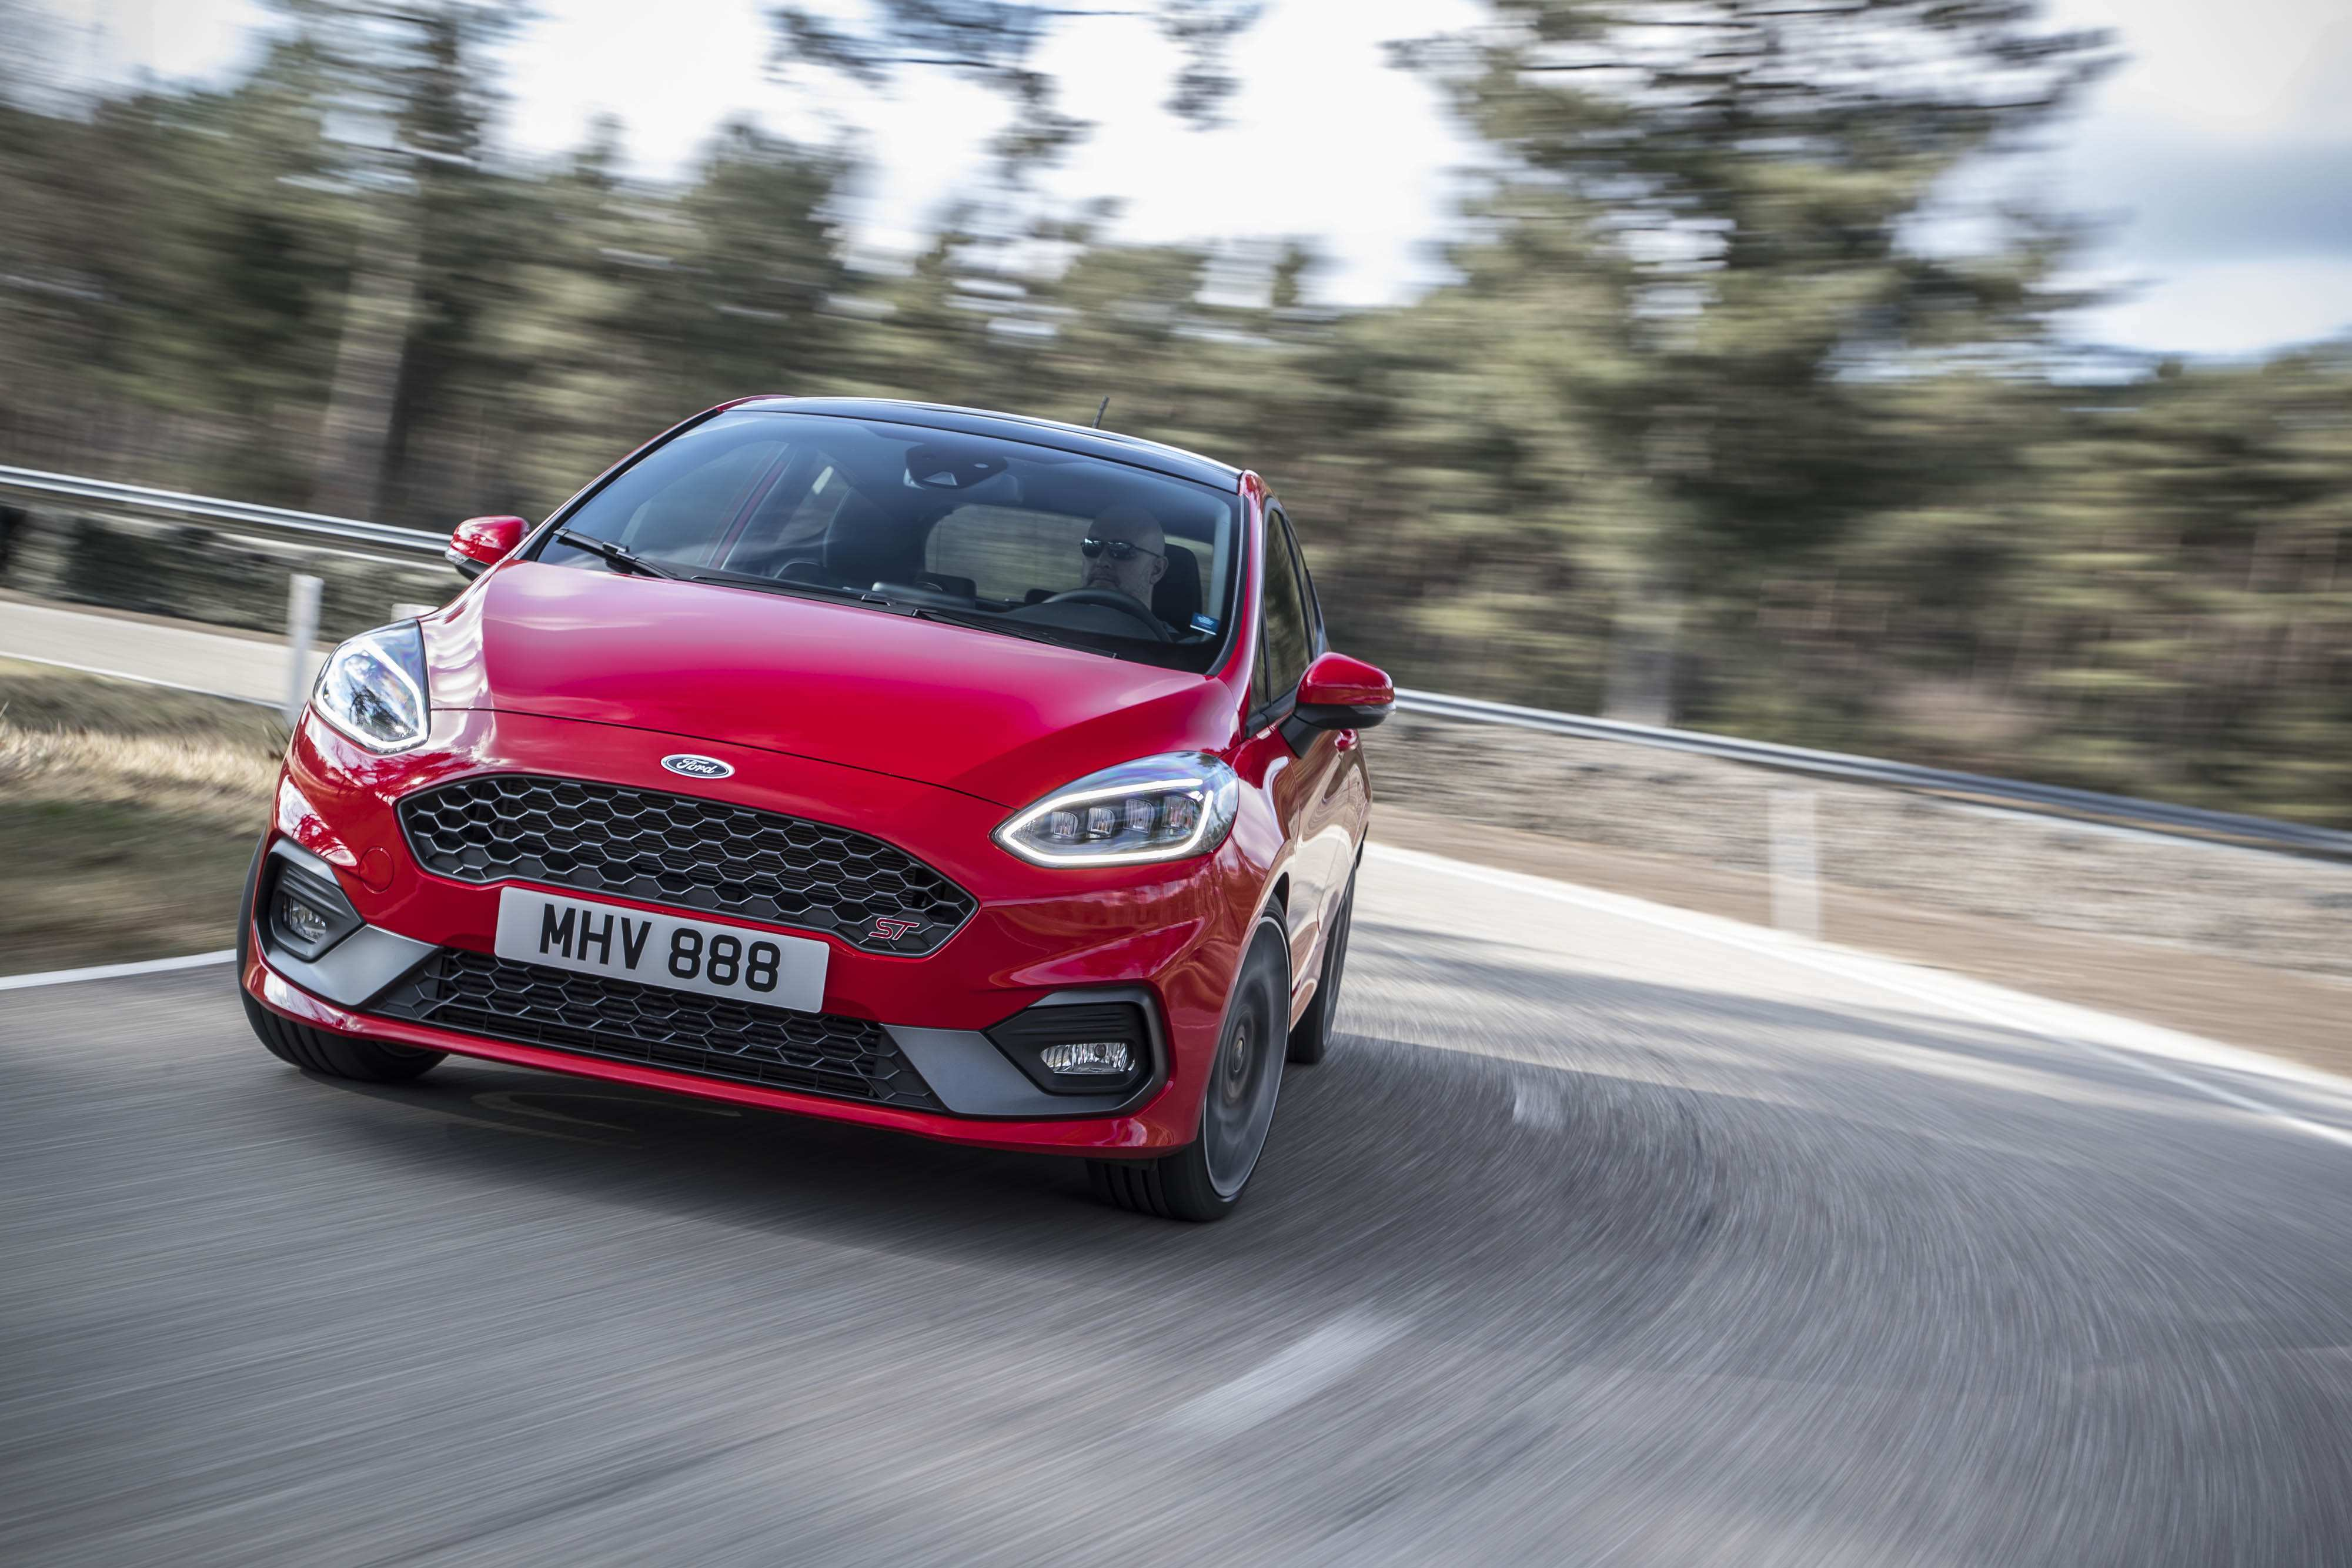 92 The 2020 Ford Fiesta Speed Test